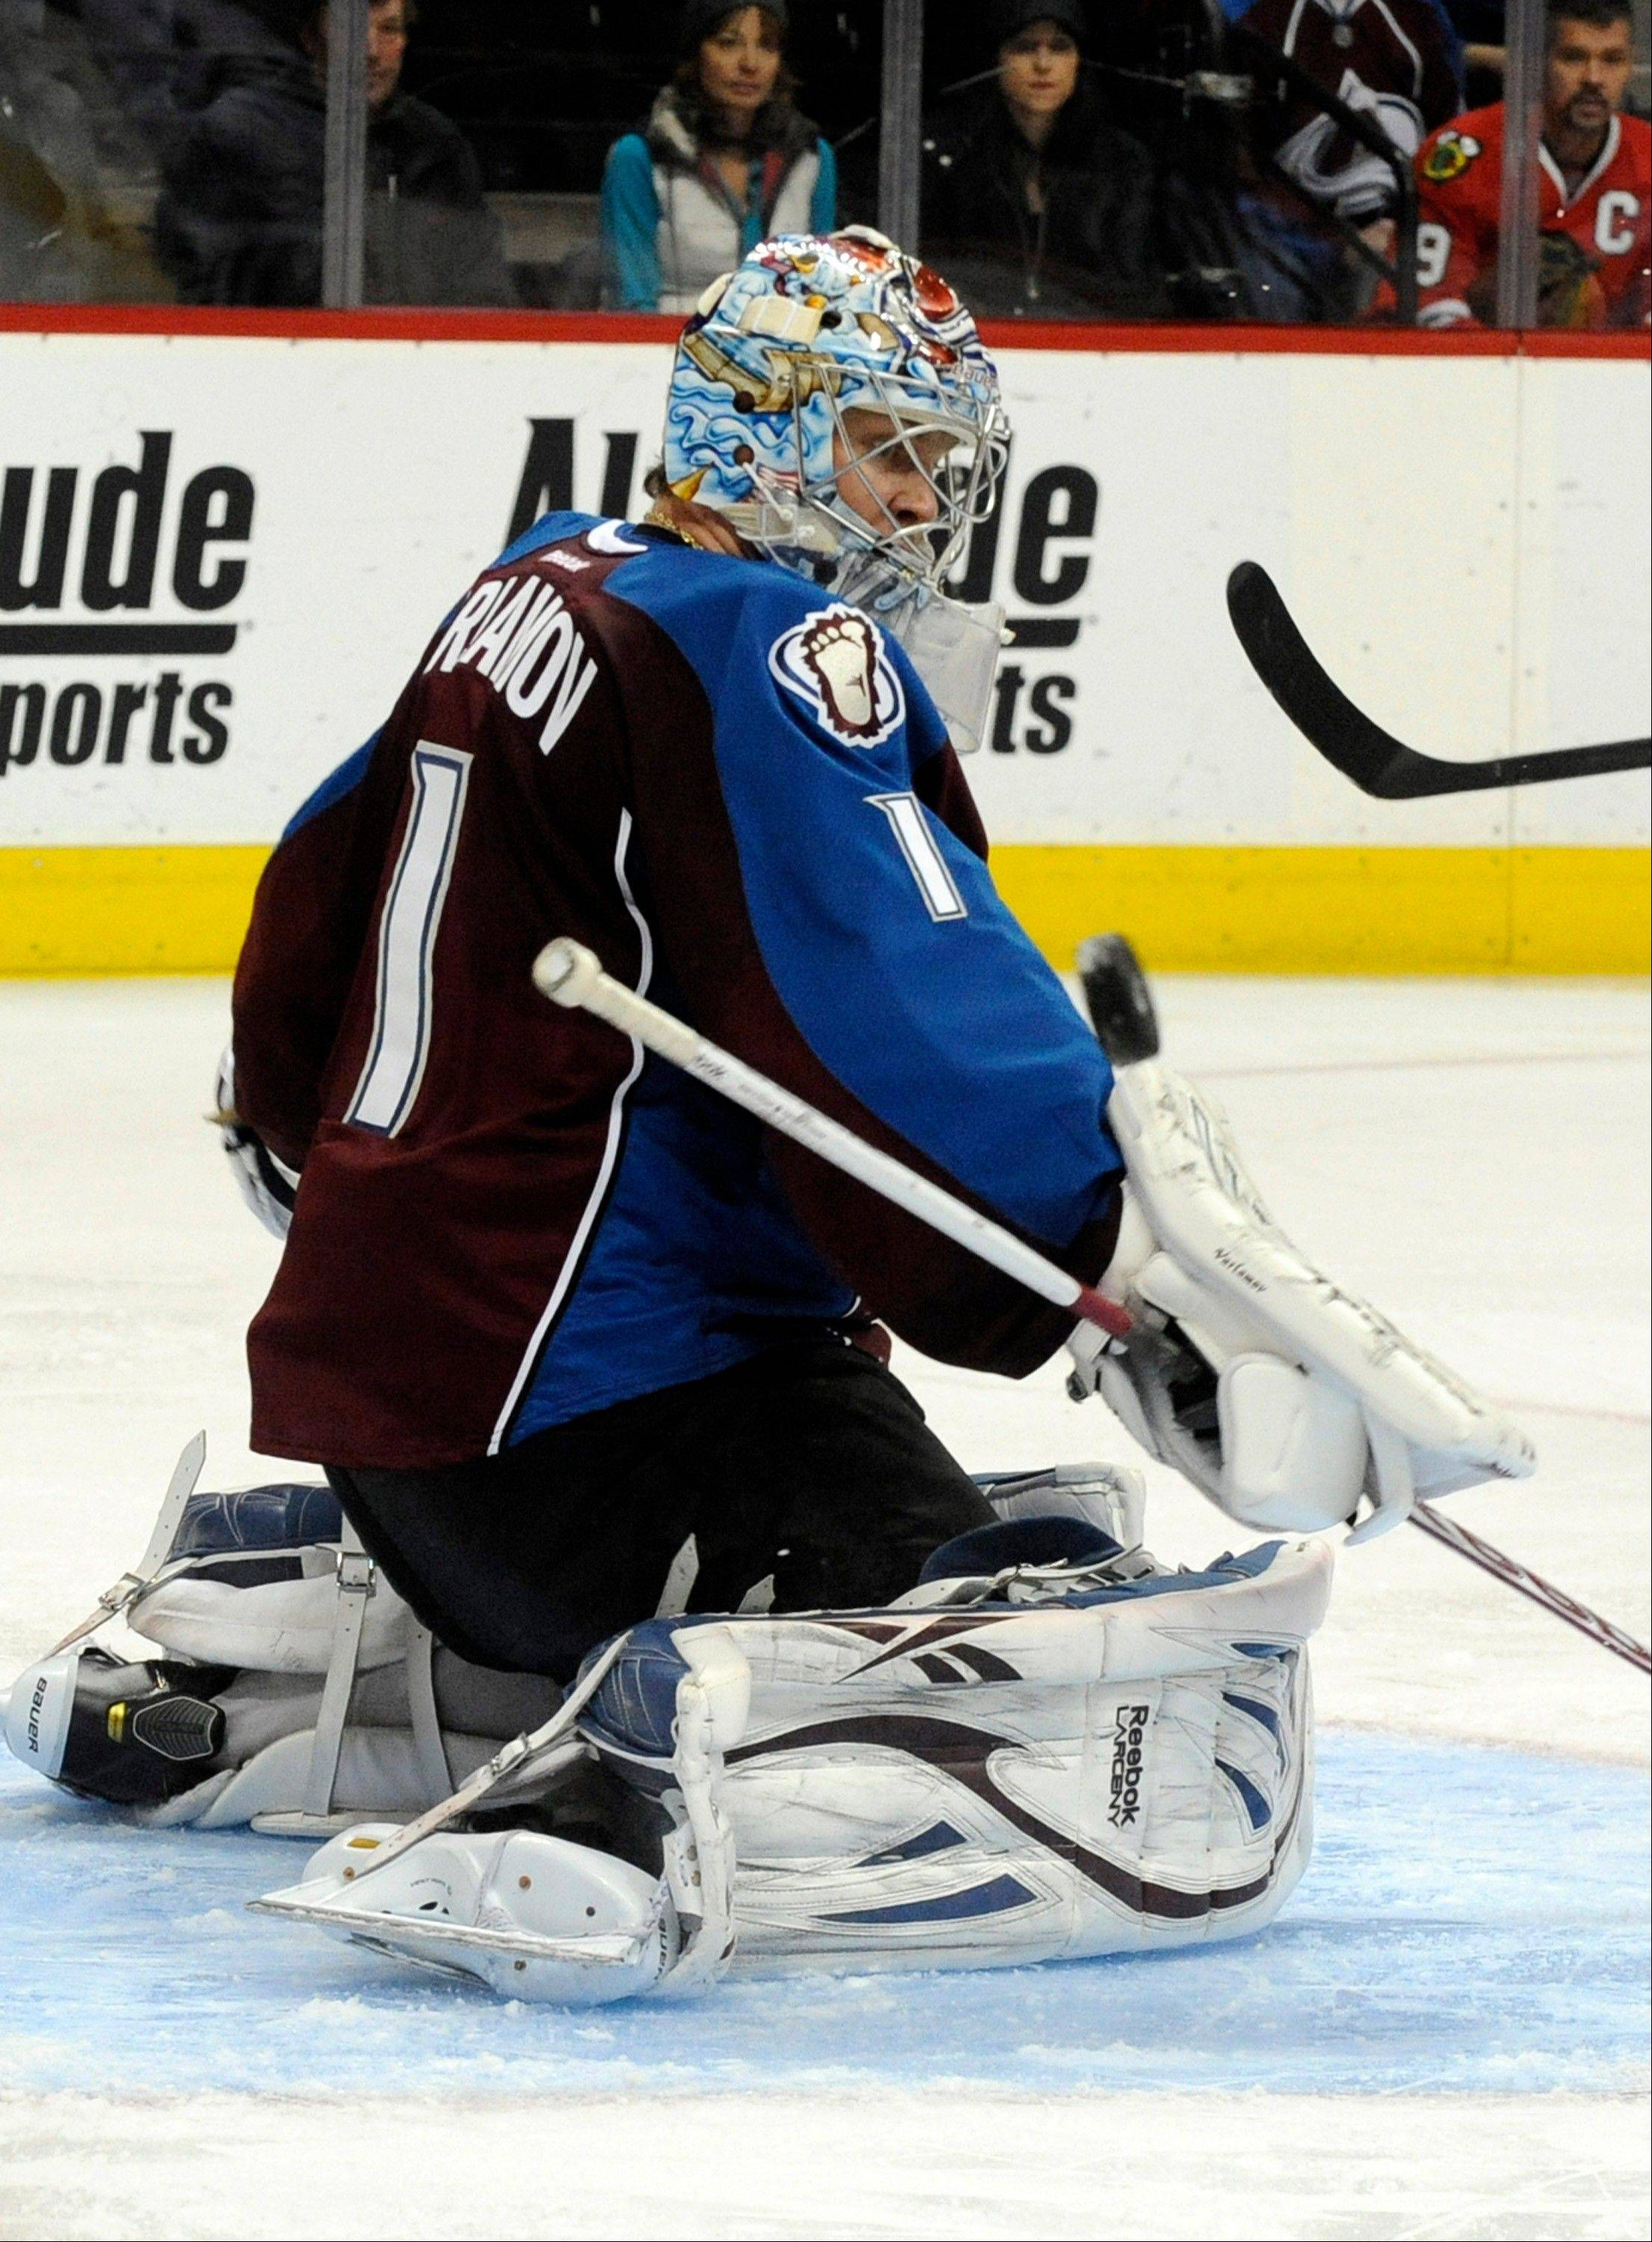 Colorado Avalanche goalie Semyon Varlamov (1), blocks a shot during the second period.